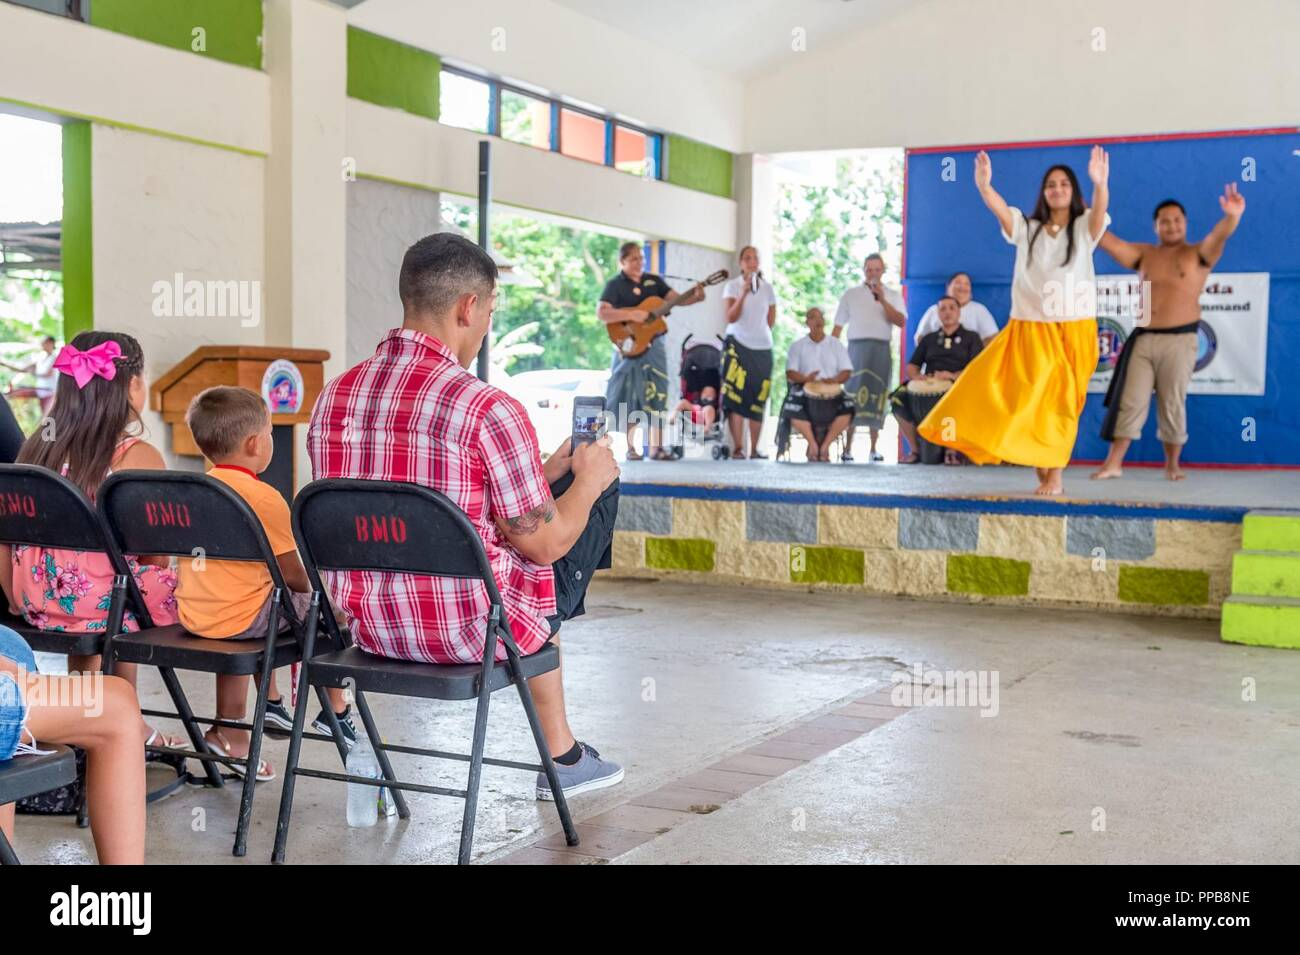 BARRIGADA, Guam (Aug. 18, 2018) Chief (select) Builder John Hart records performers from the group Tao Tao Tano, who are performing Chamorro music and dances during the Village of Barrigada's welcome fiesta for the 30th Naval Construction Regiment (30NCR). The Village of Barrigada is 30NCR's sister village and the two will conduct community service projects and other functions together. 30NCR relocated to Guam from Port Hueneme, California, July 1. - Stock Image